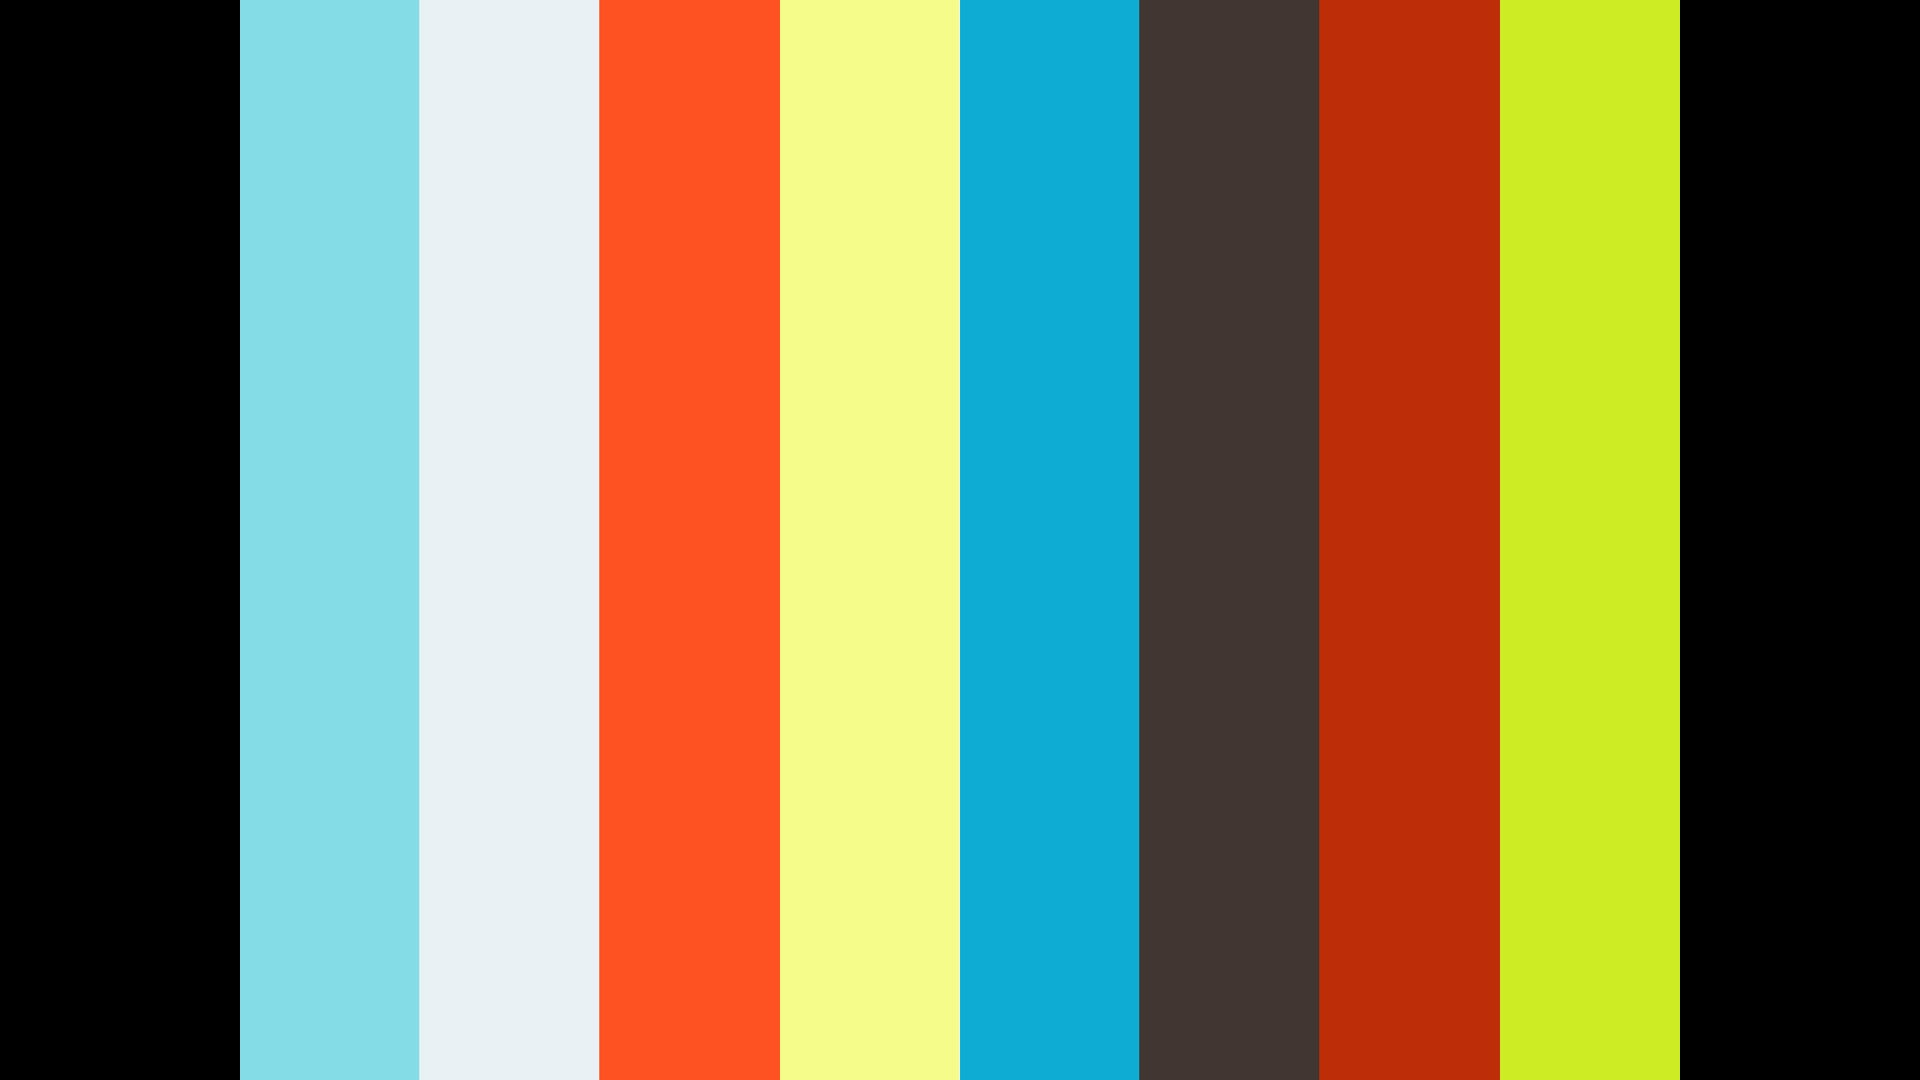 GEFOND - For a long life industry